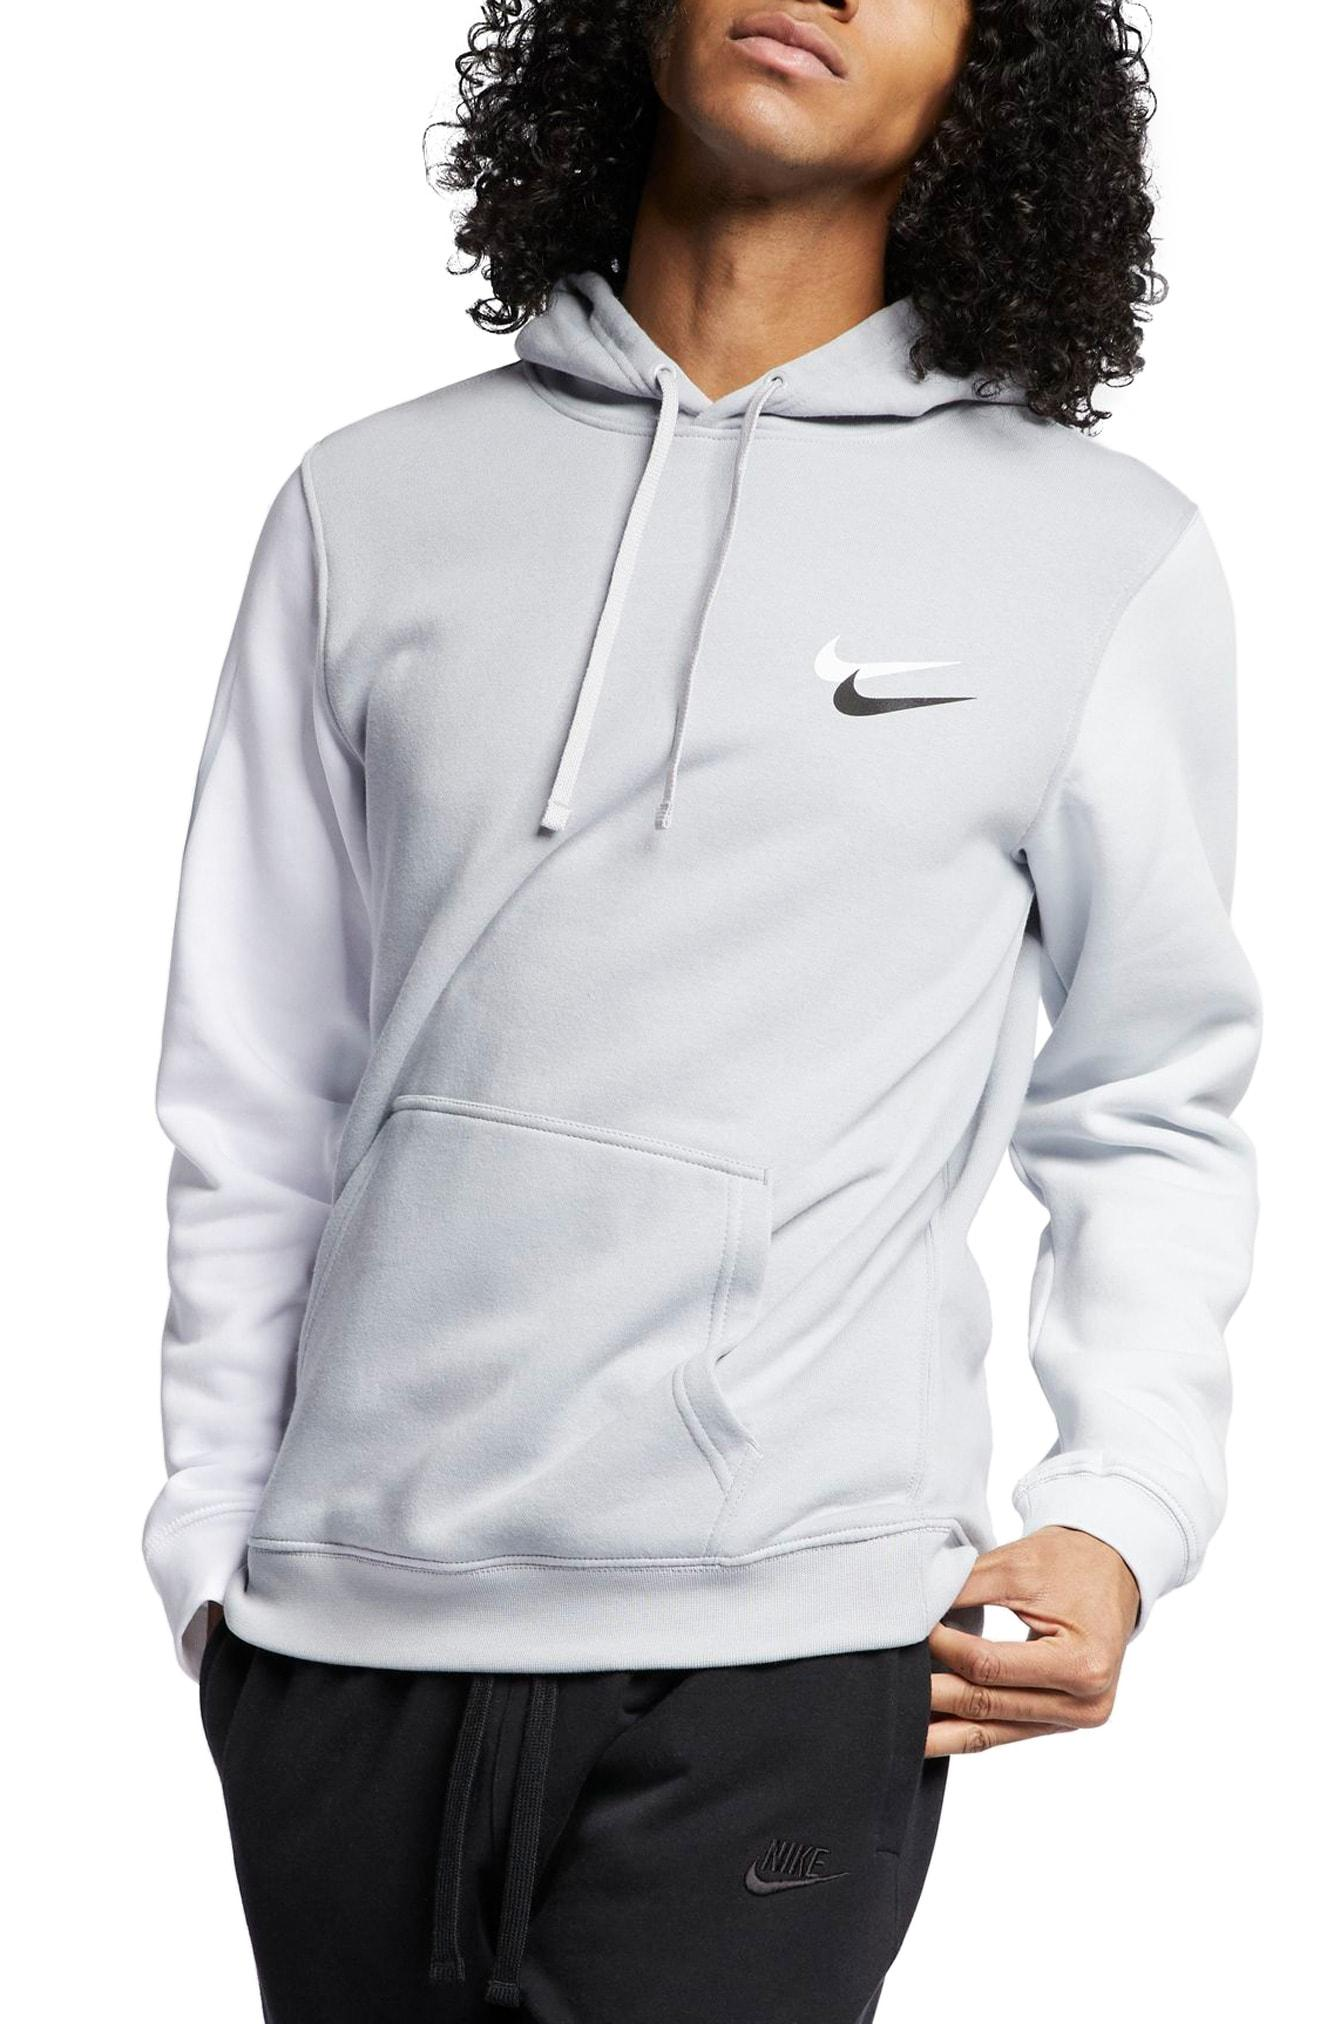 5dbd72b43fa3 Lyst - Nike Sportswear City Brights Club Men s Pullover Hoodie in ...